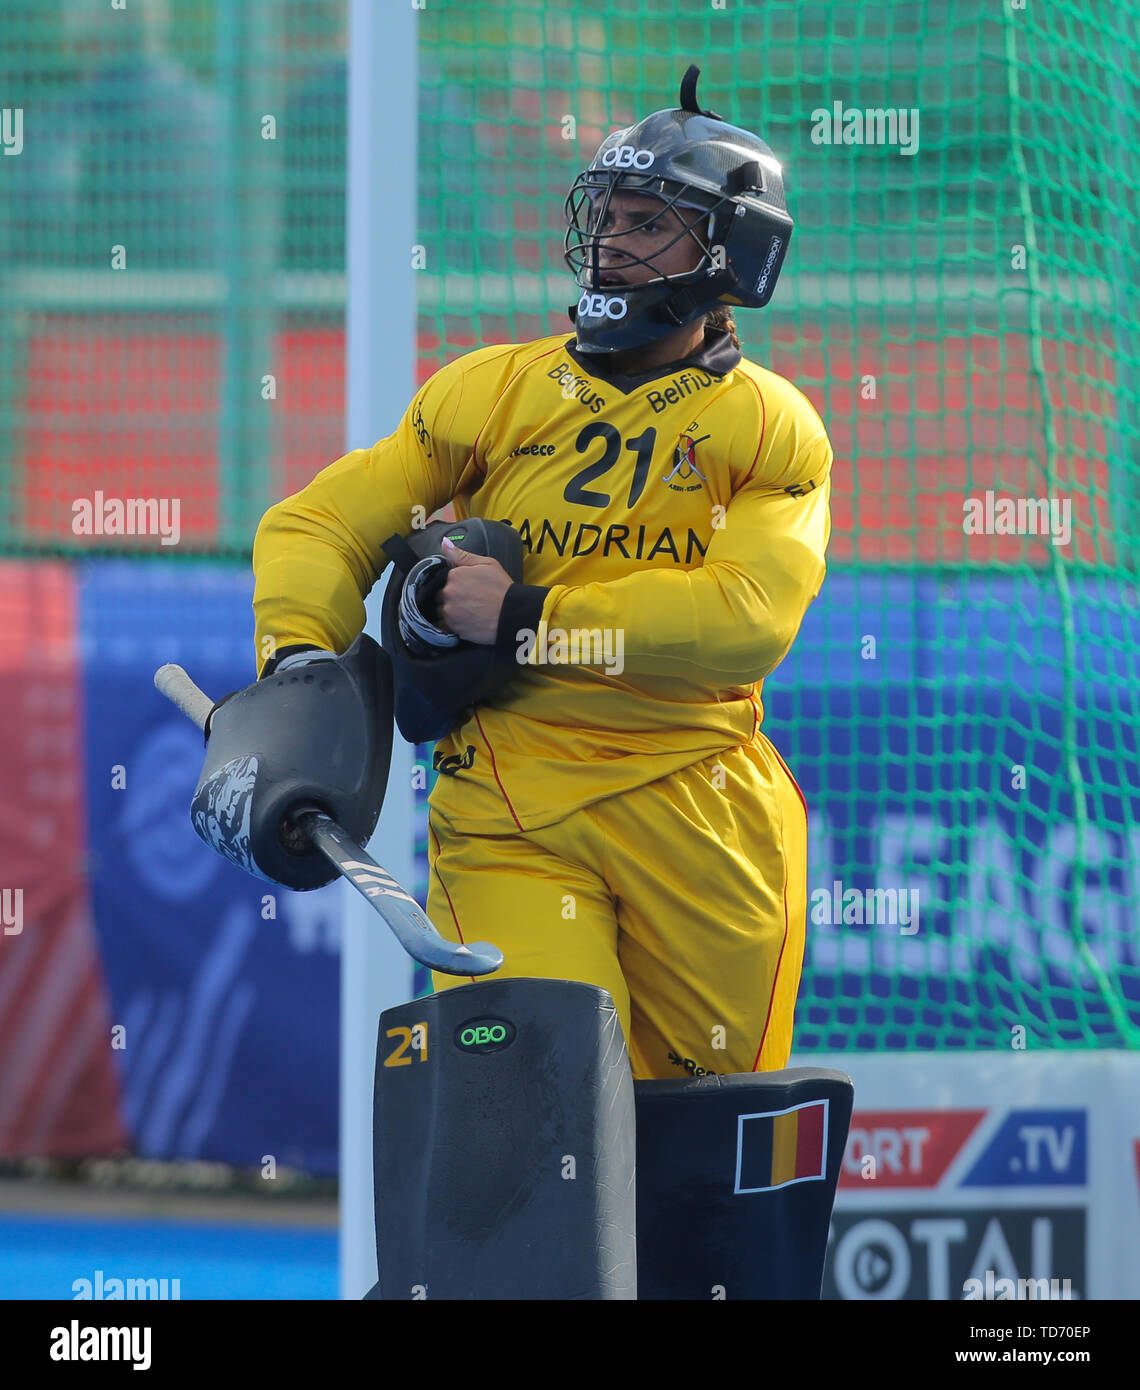 Krefeld, Germany, June 12 2019, Hockey, FIH Pro League, women, Germany vs. Belgium : Goalie Aisling D Hooghe. - Stock Image